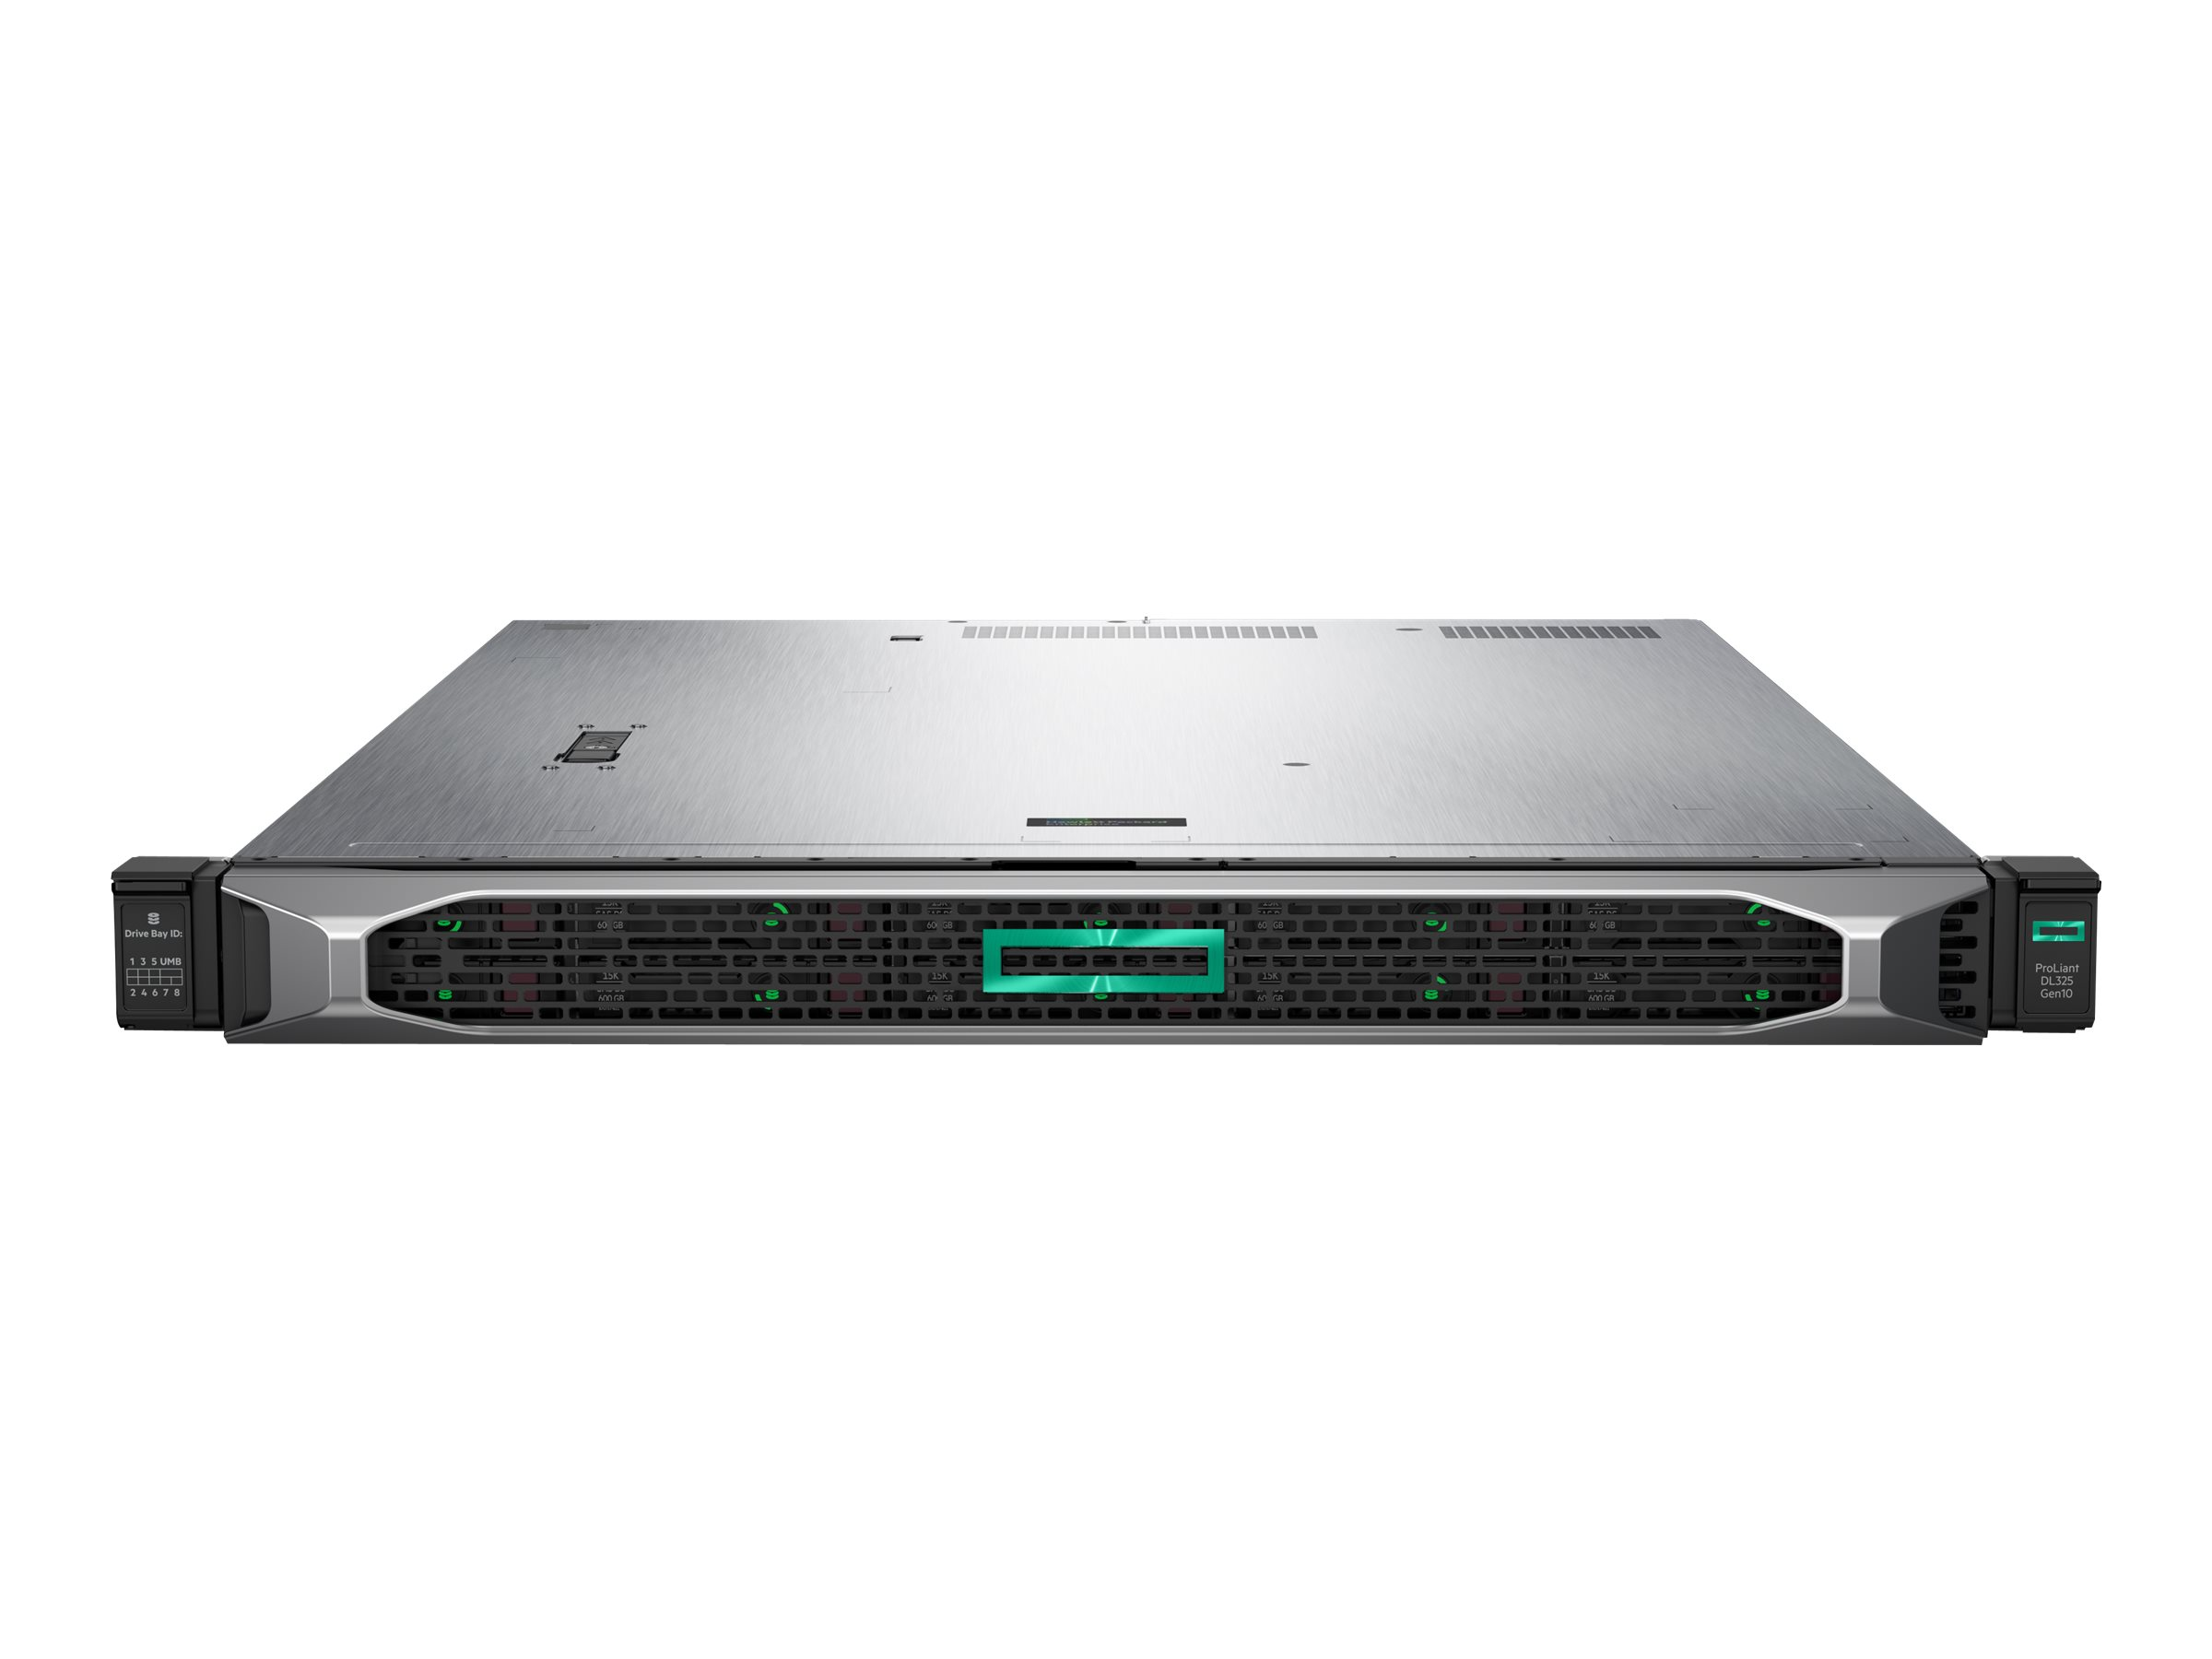 HPE ProLiant DL325 Gen10 Performance - rack-mountable - EPYC 7351P 2.4 GHz - 16 GB - no HDD